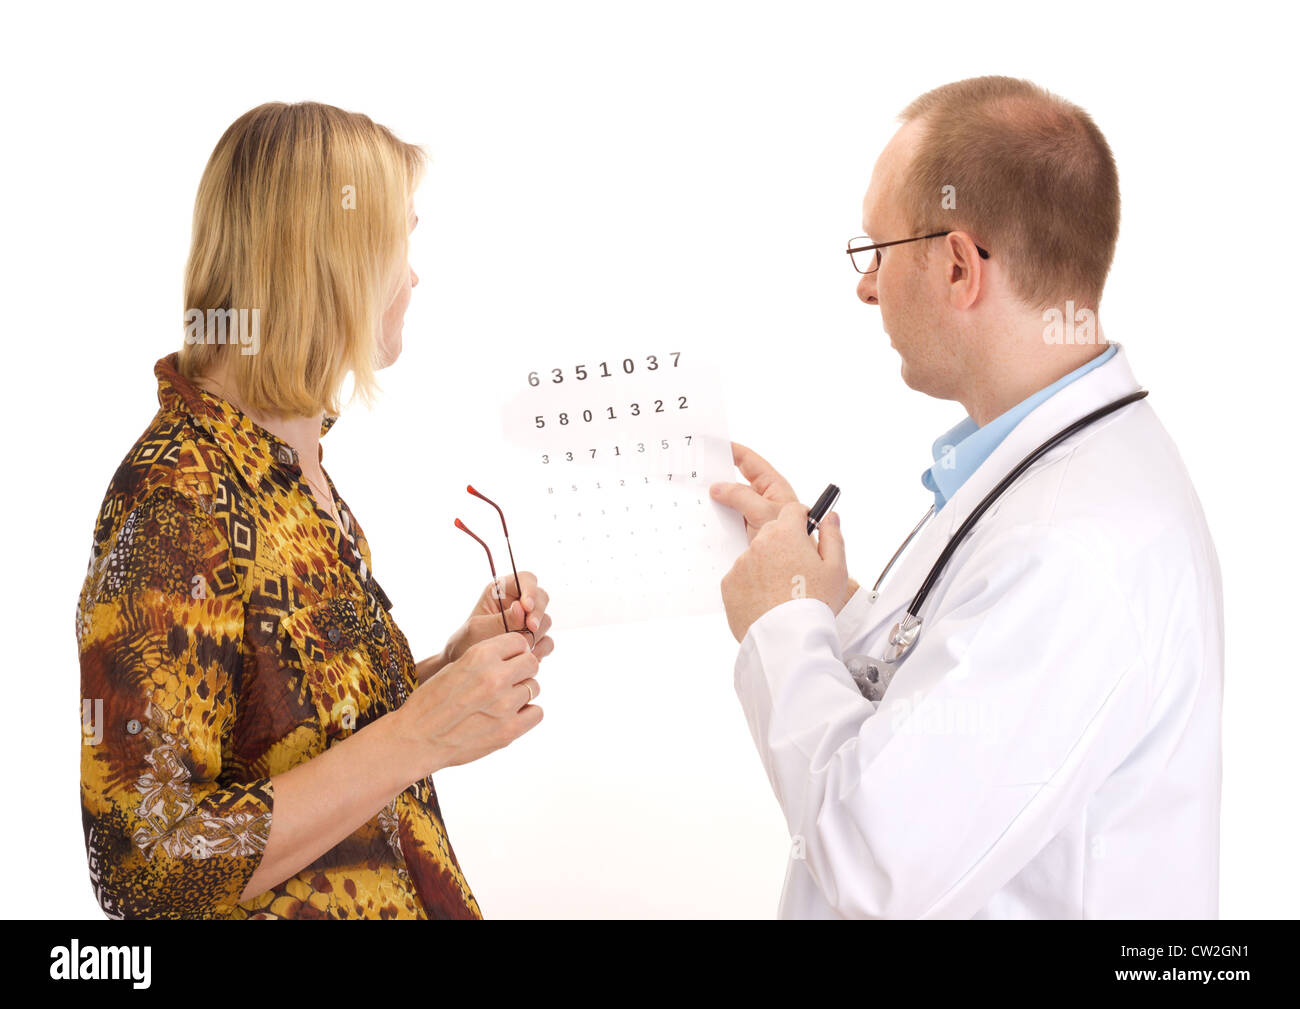 Patient by an ophthalmologist - Stock Image